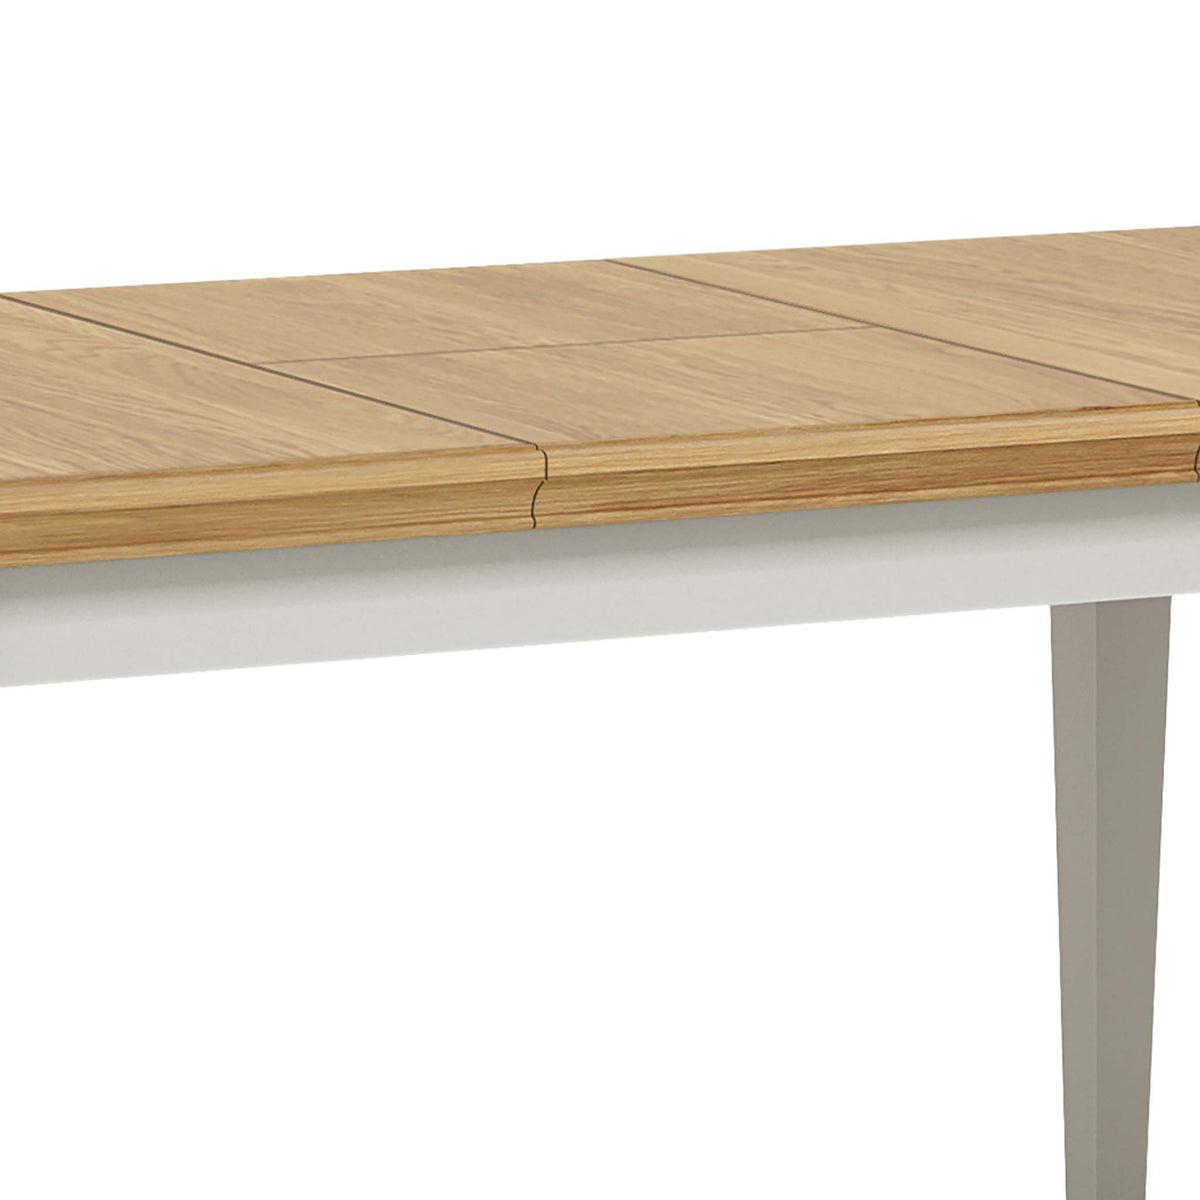 Normandy Grey 120-165cm Dining Table - Close Up of Middle Extension Section